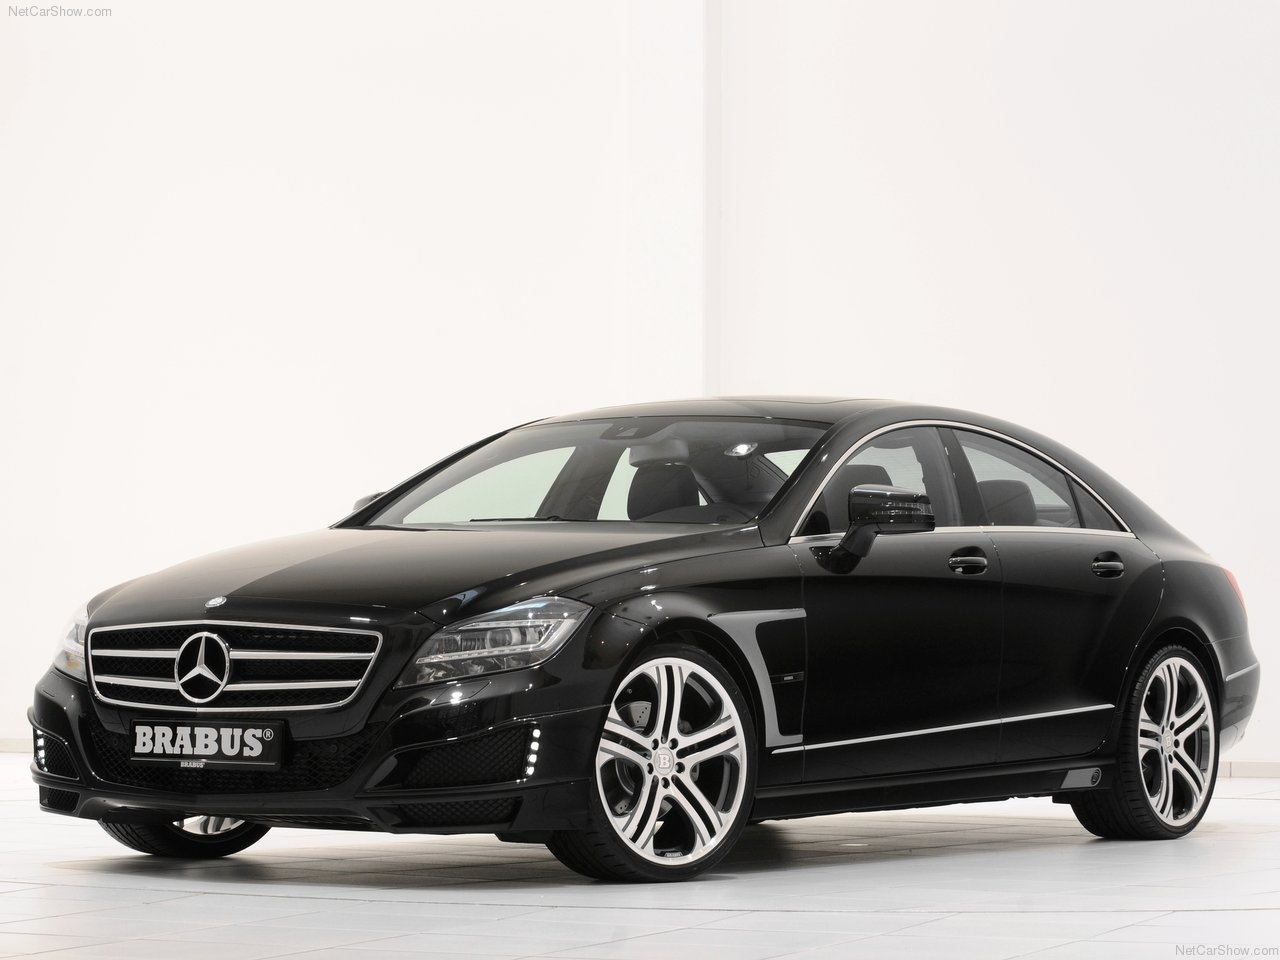 Brabus mercedes benz cls 2012 for 2012 mercedes benz cls